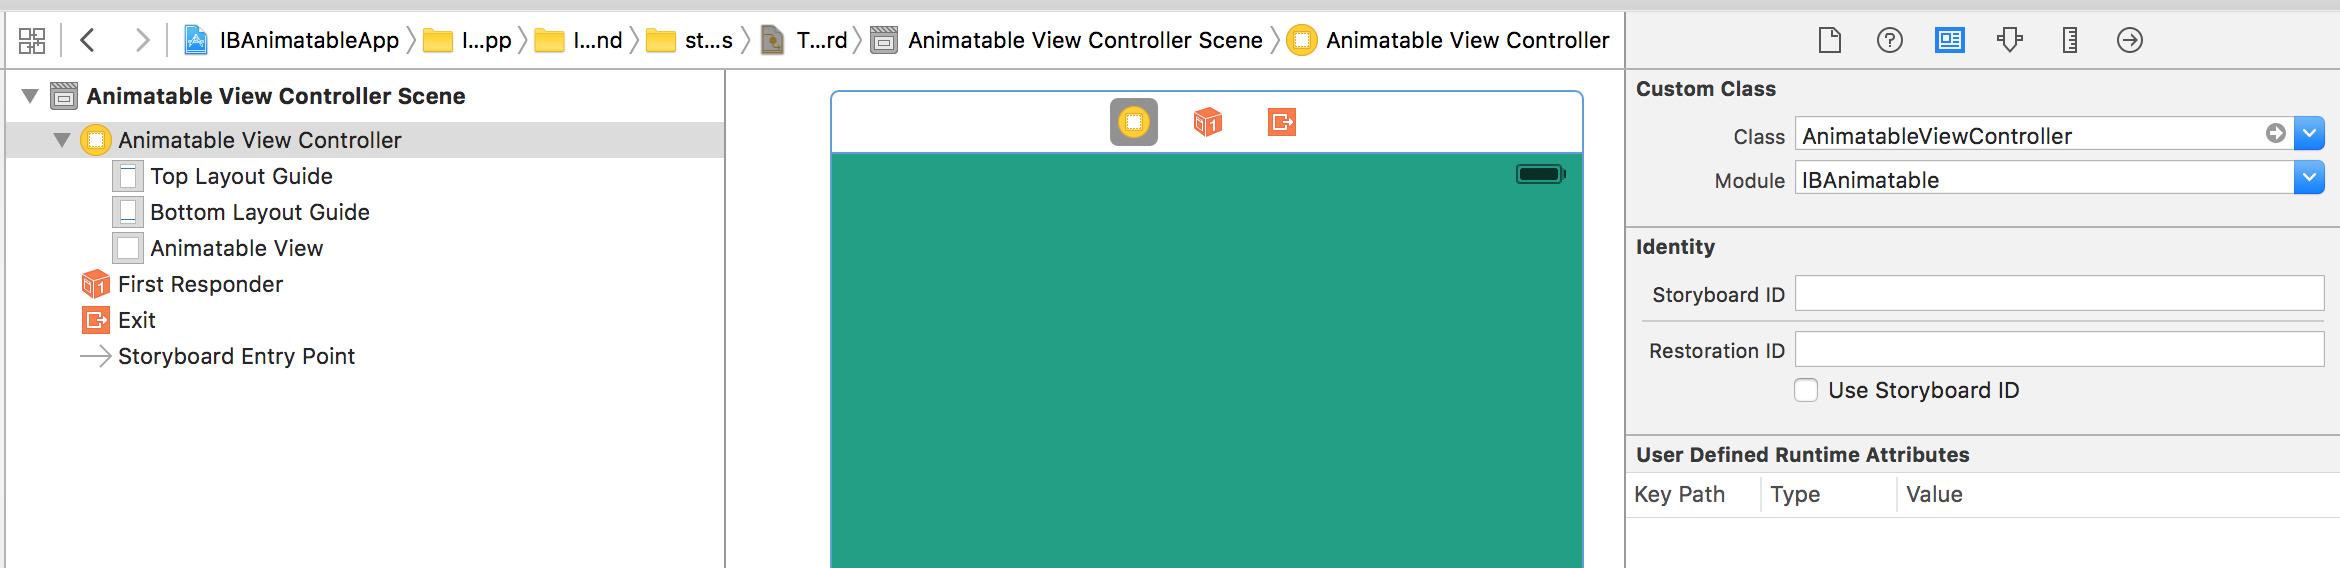 Transition - AnimatableViewController